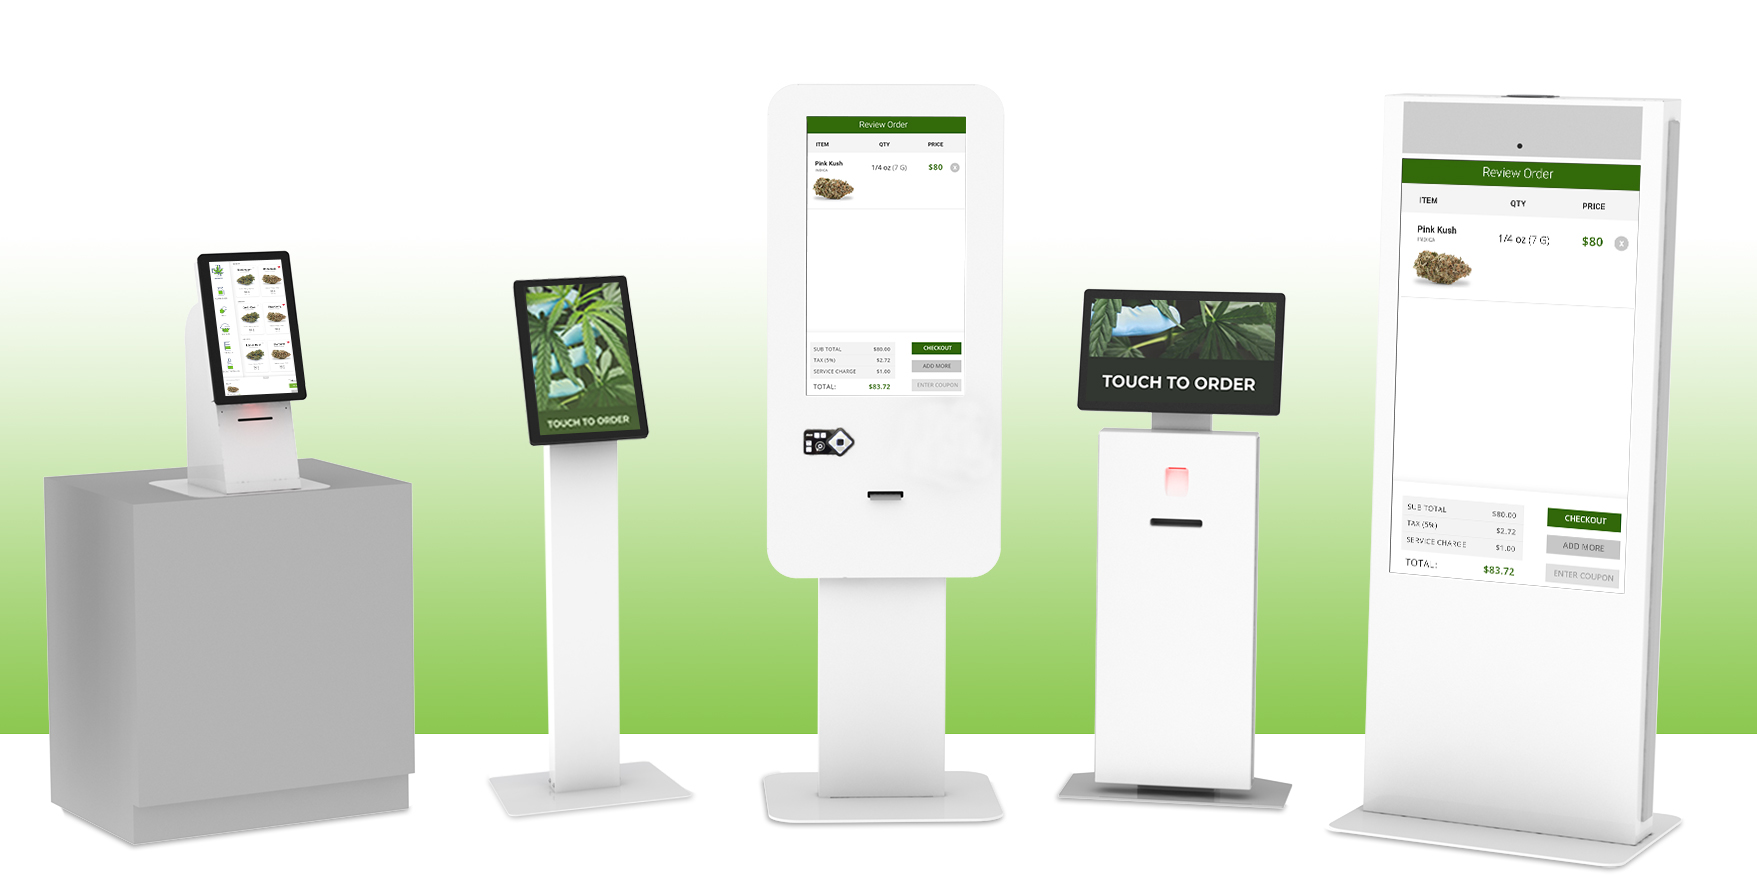 A Self-Service Cannabis Kiosk That Offers Digital Payment Processing